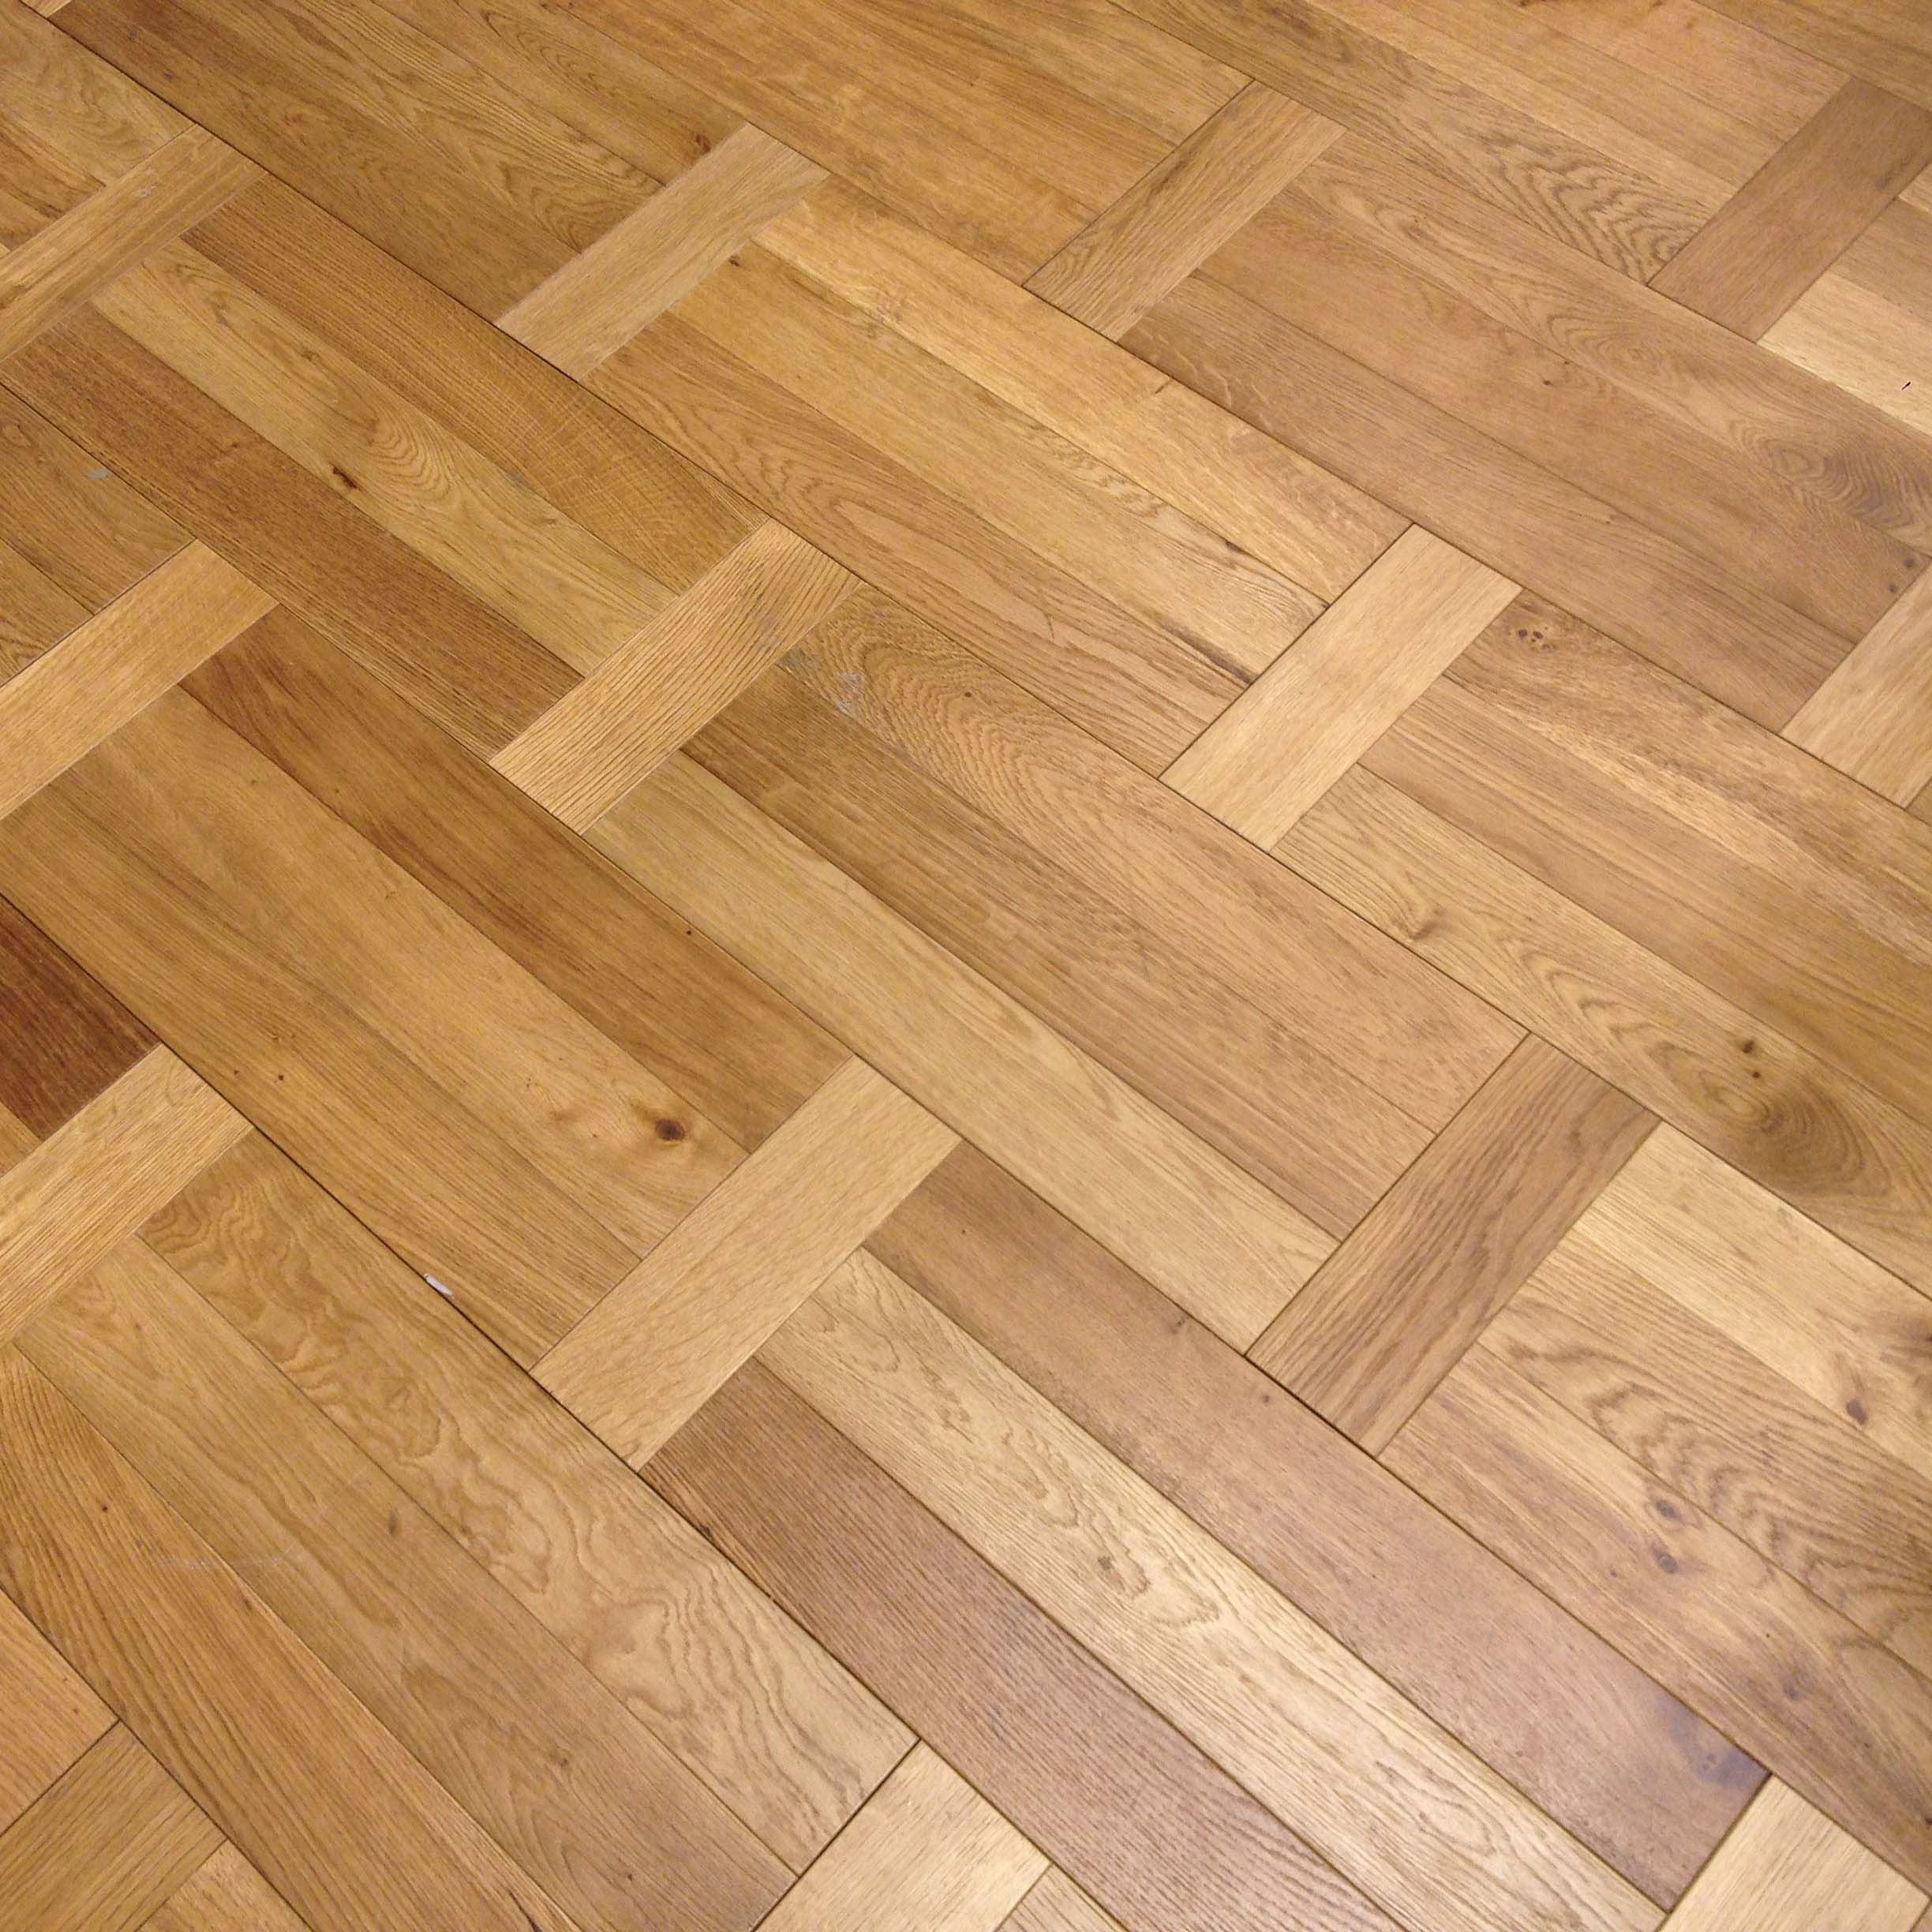 2.Dutch Parquet Floor